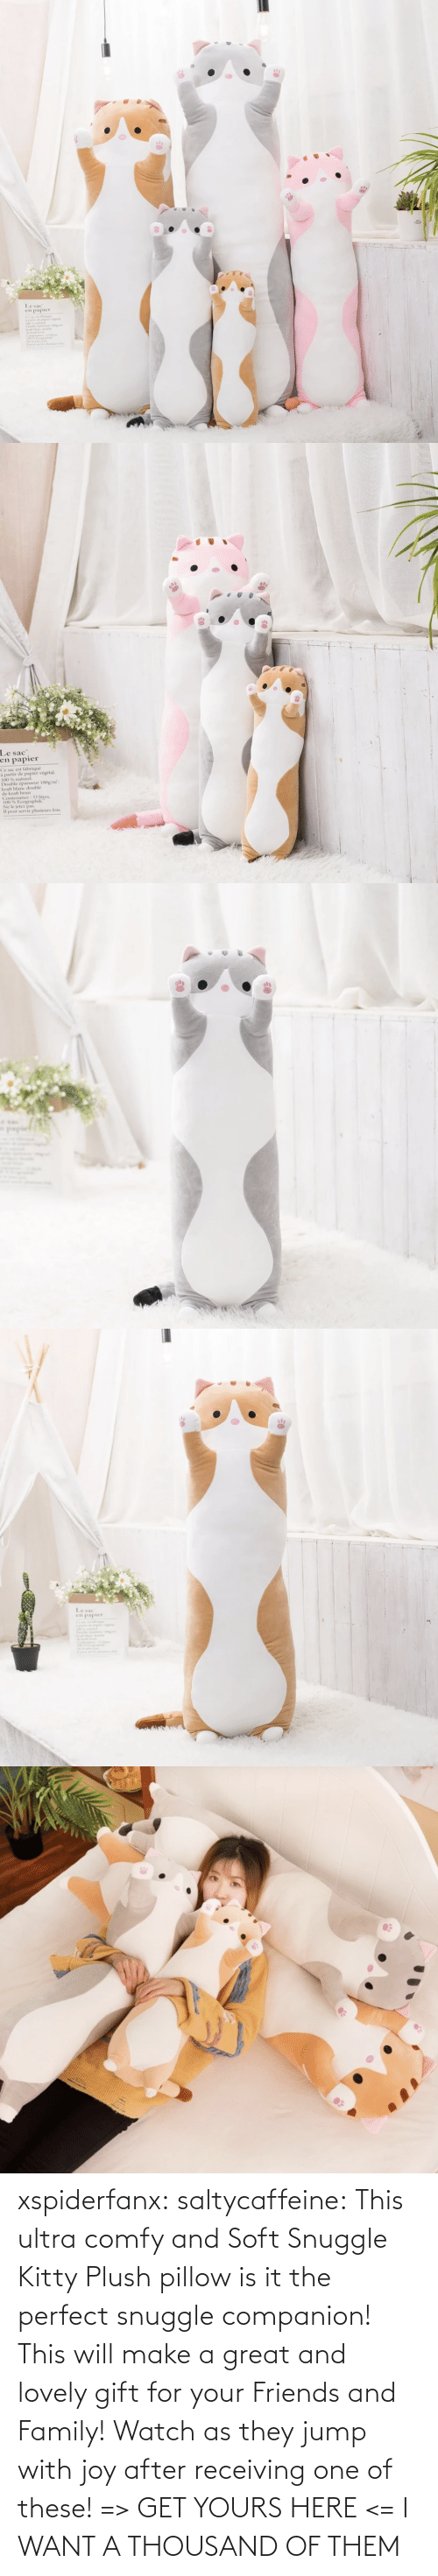 products: xspiderfanx:  saltycaffeine: This ultra comfy and Soft Snuggle Kitty Plush pillow is it the perfect snuggle companion! This will make a great and lovely gift for your Friends and Family! Watch as they jump with joy after receiving one of these! => GET YOURS HERE <=    I WANT A THOUSAND OF THEM